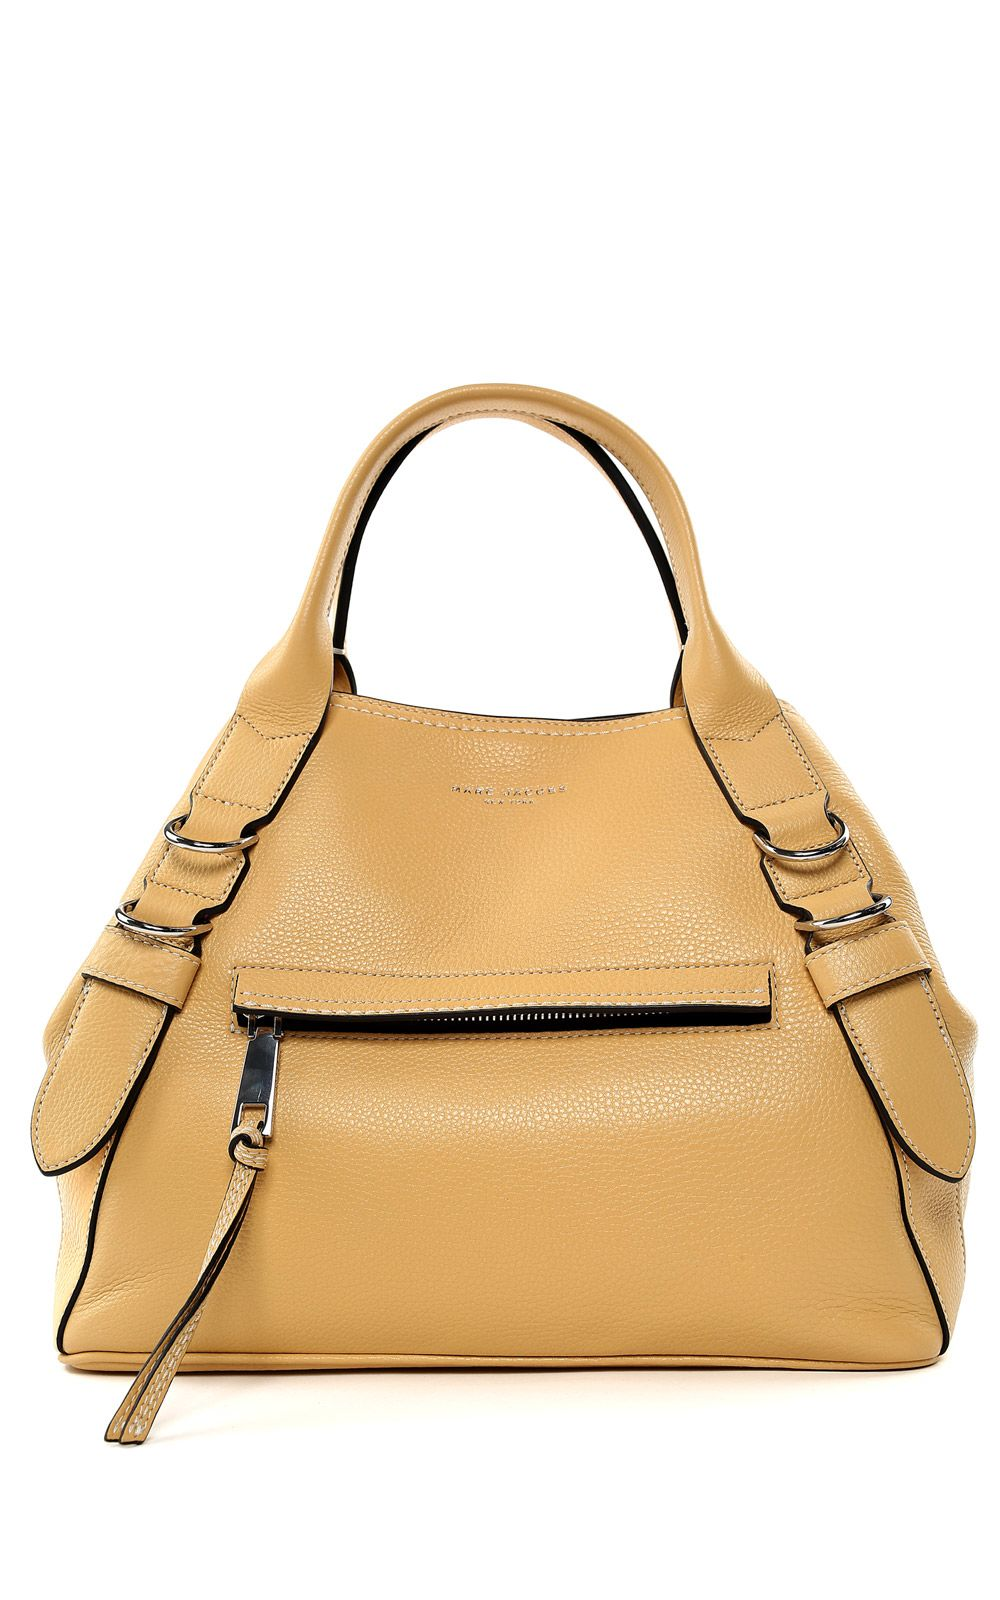 marc jacobs female marc jacobs the anchor pebbledleather shopping bag